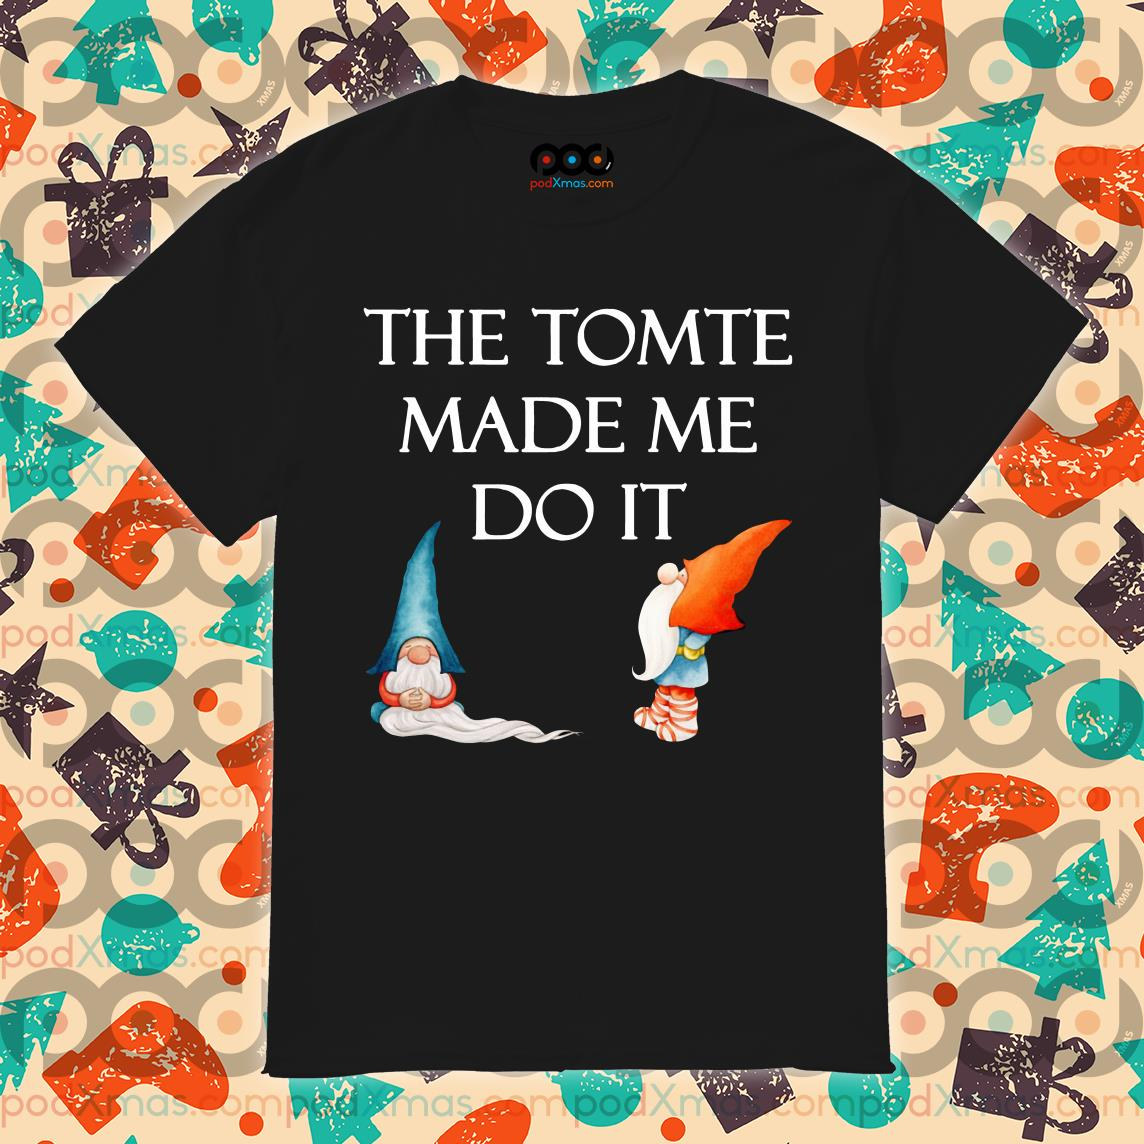 The tomte made me do it shirt